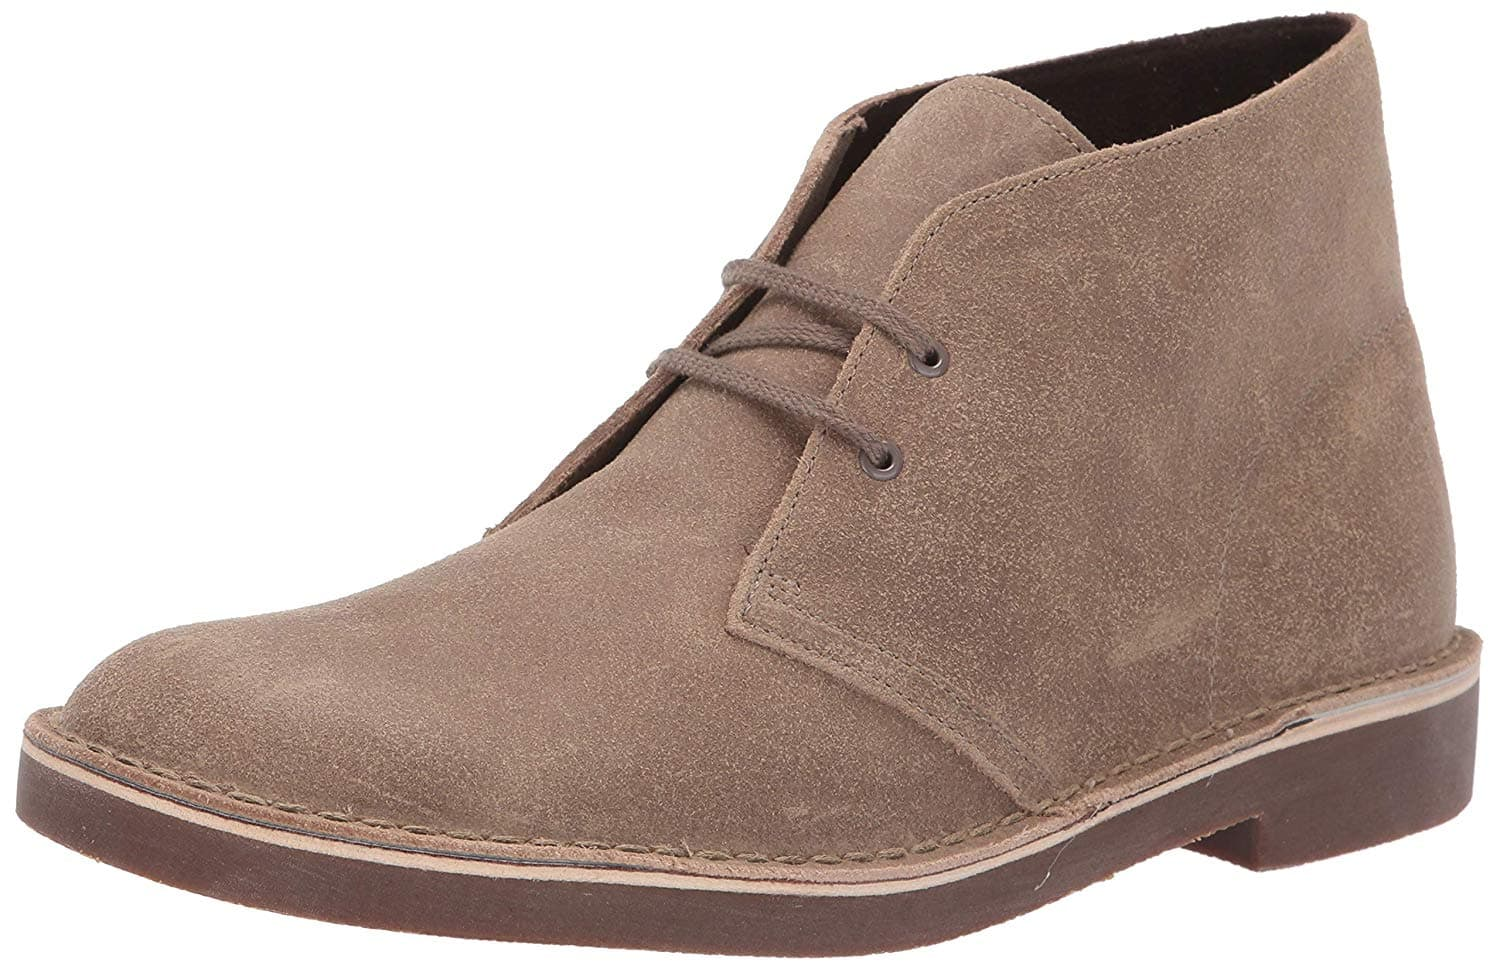 9617aecee4f CLARKS Men's Bushacre 2 Chukka Boot, Taupe Distressed Suede, 105 M ...